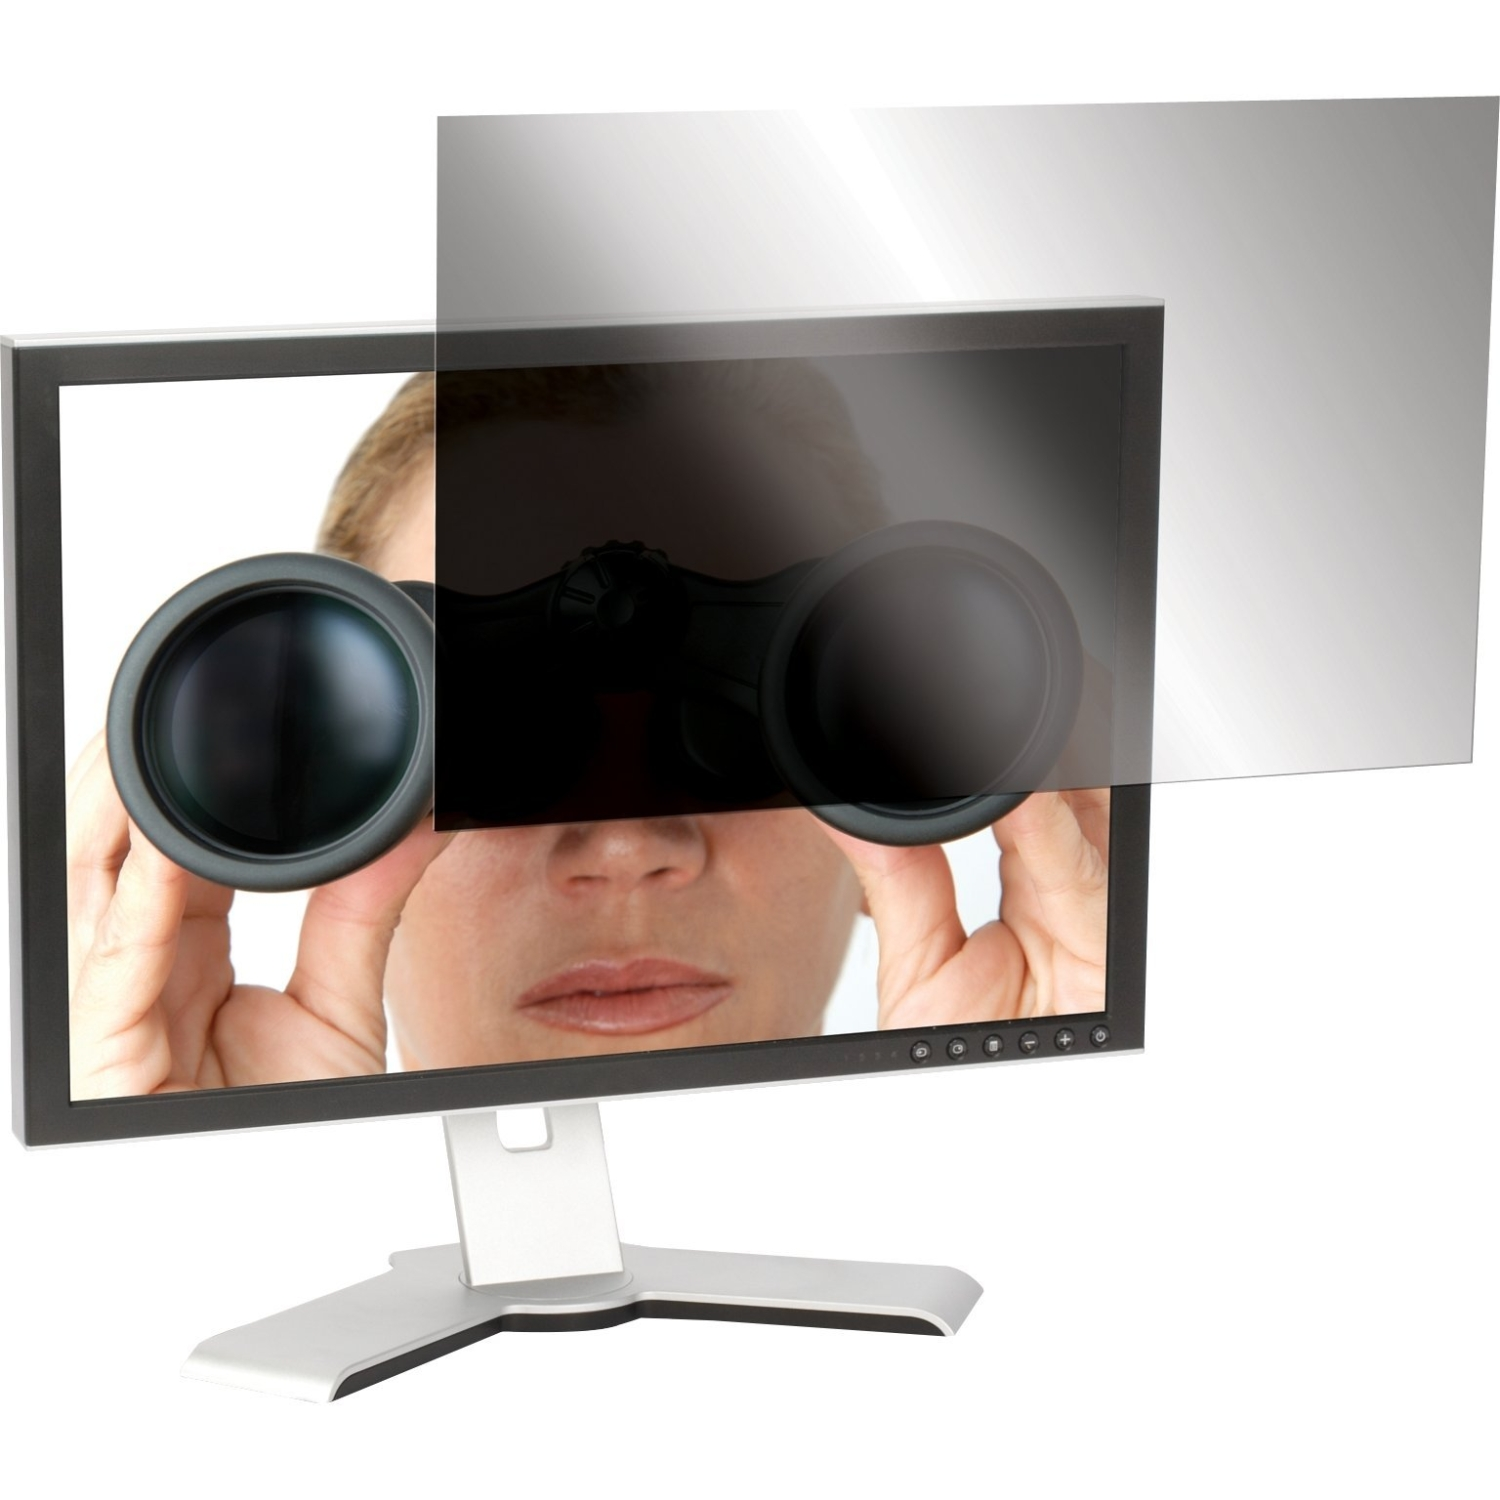 27 inch Widescreen LCD Monitor Privacy Screen (16:9) - 27 inch LCD Monitor Notebook